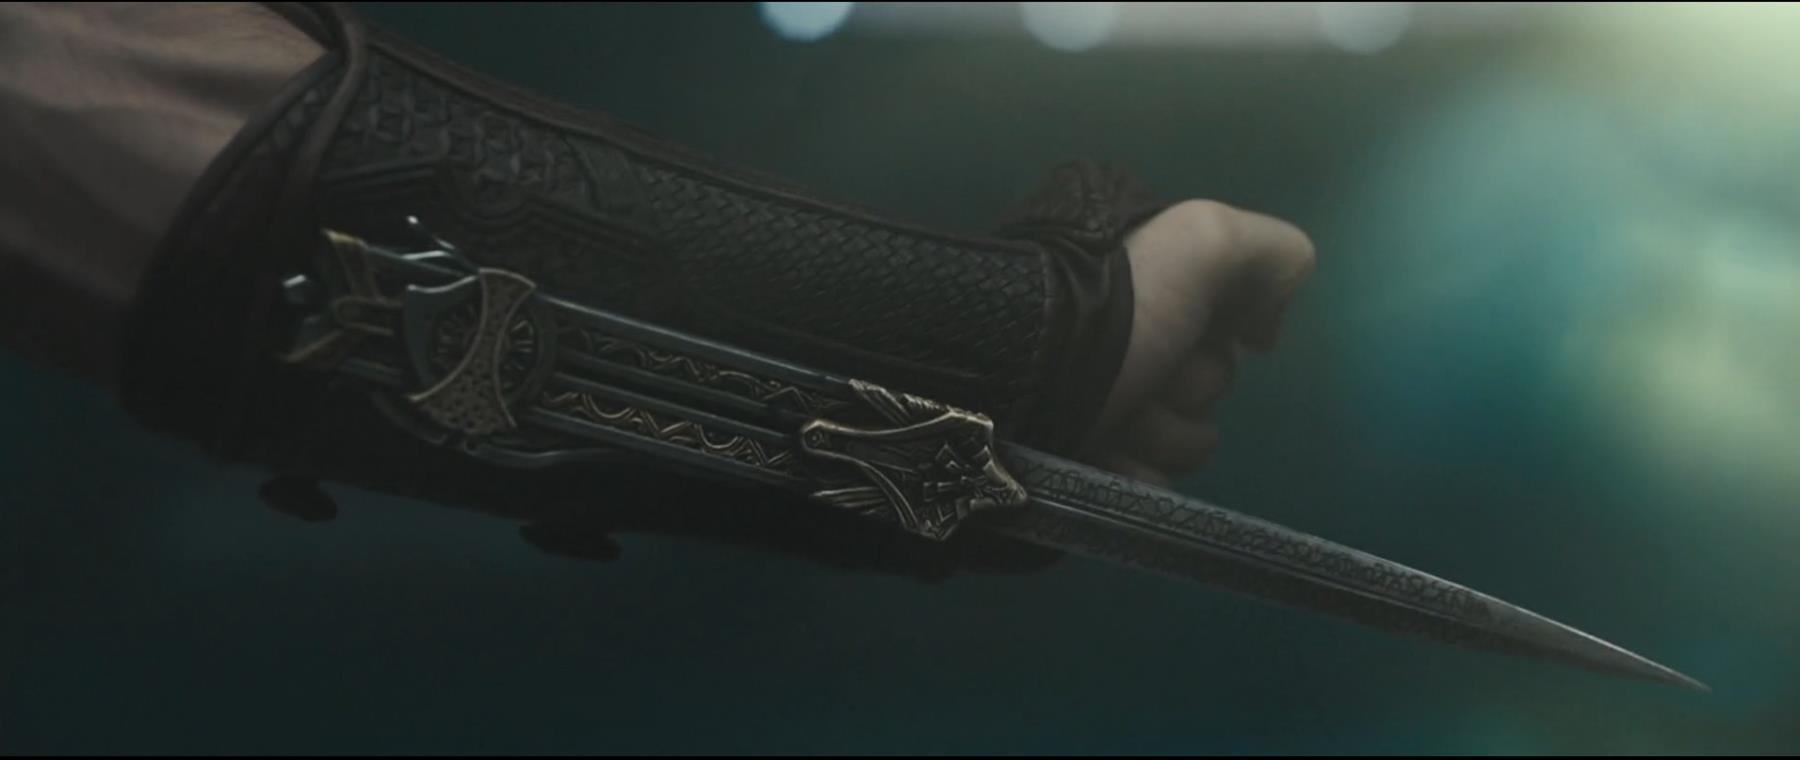 ASSASSIN'S CREED (2016) - Aguilar's (Michael Fassbender) SFX Wristblade - Image 16 of 17